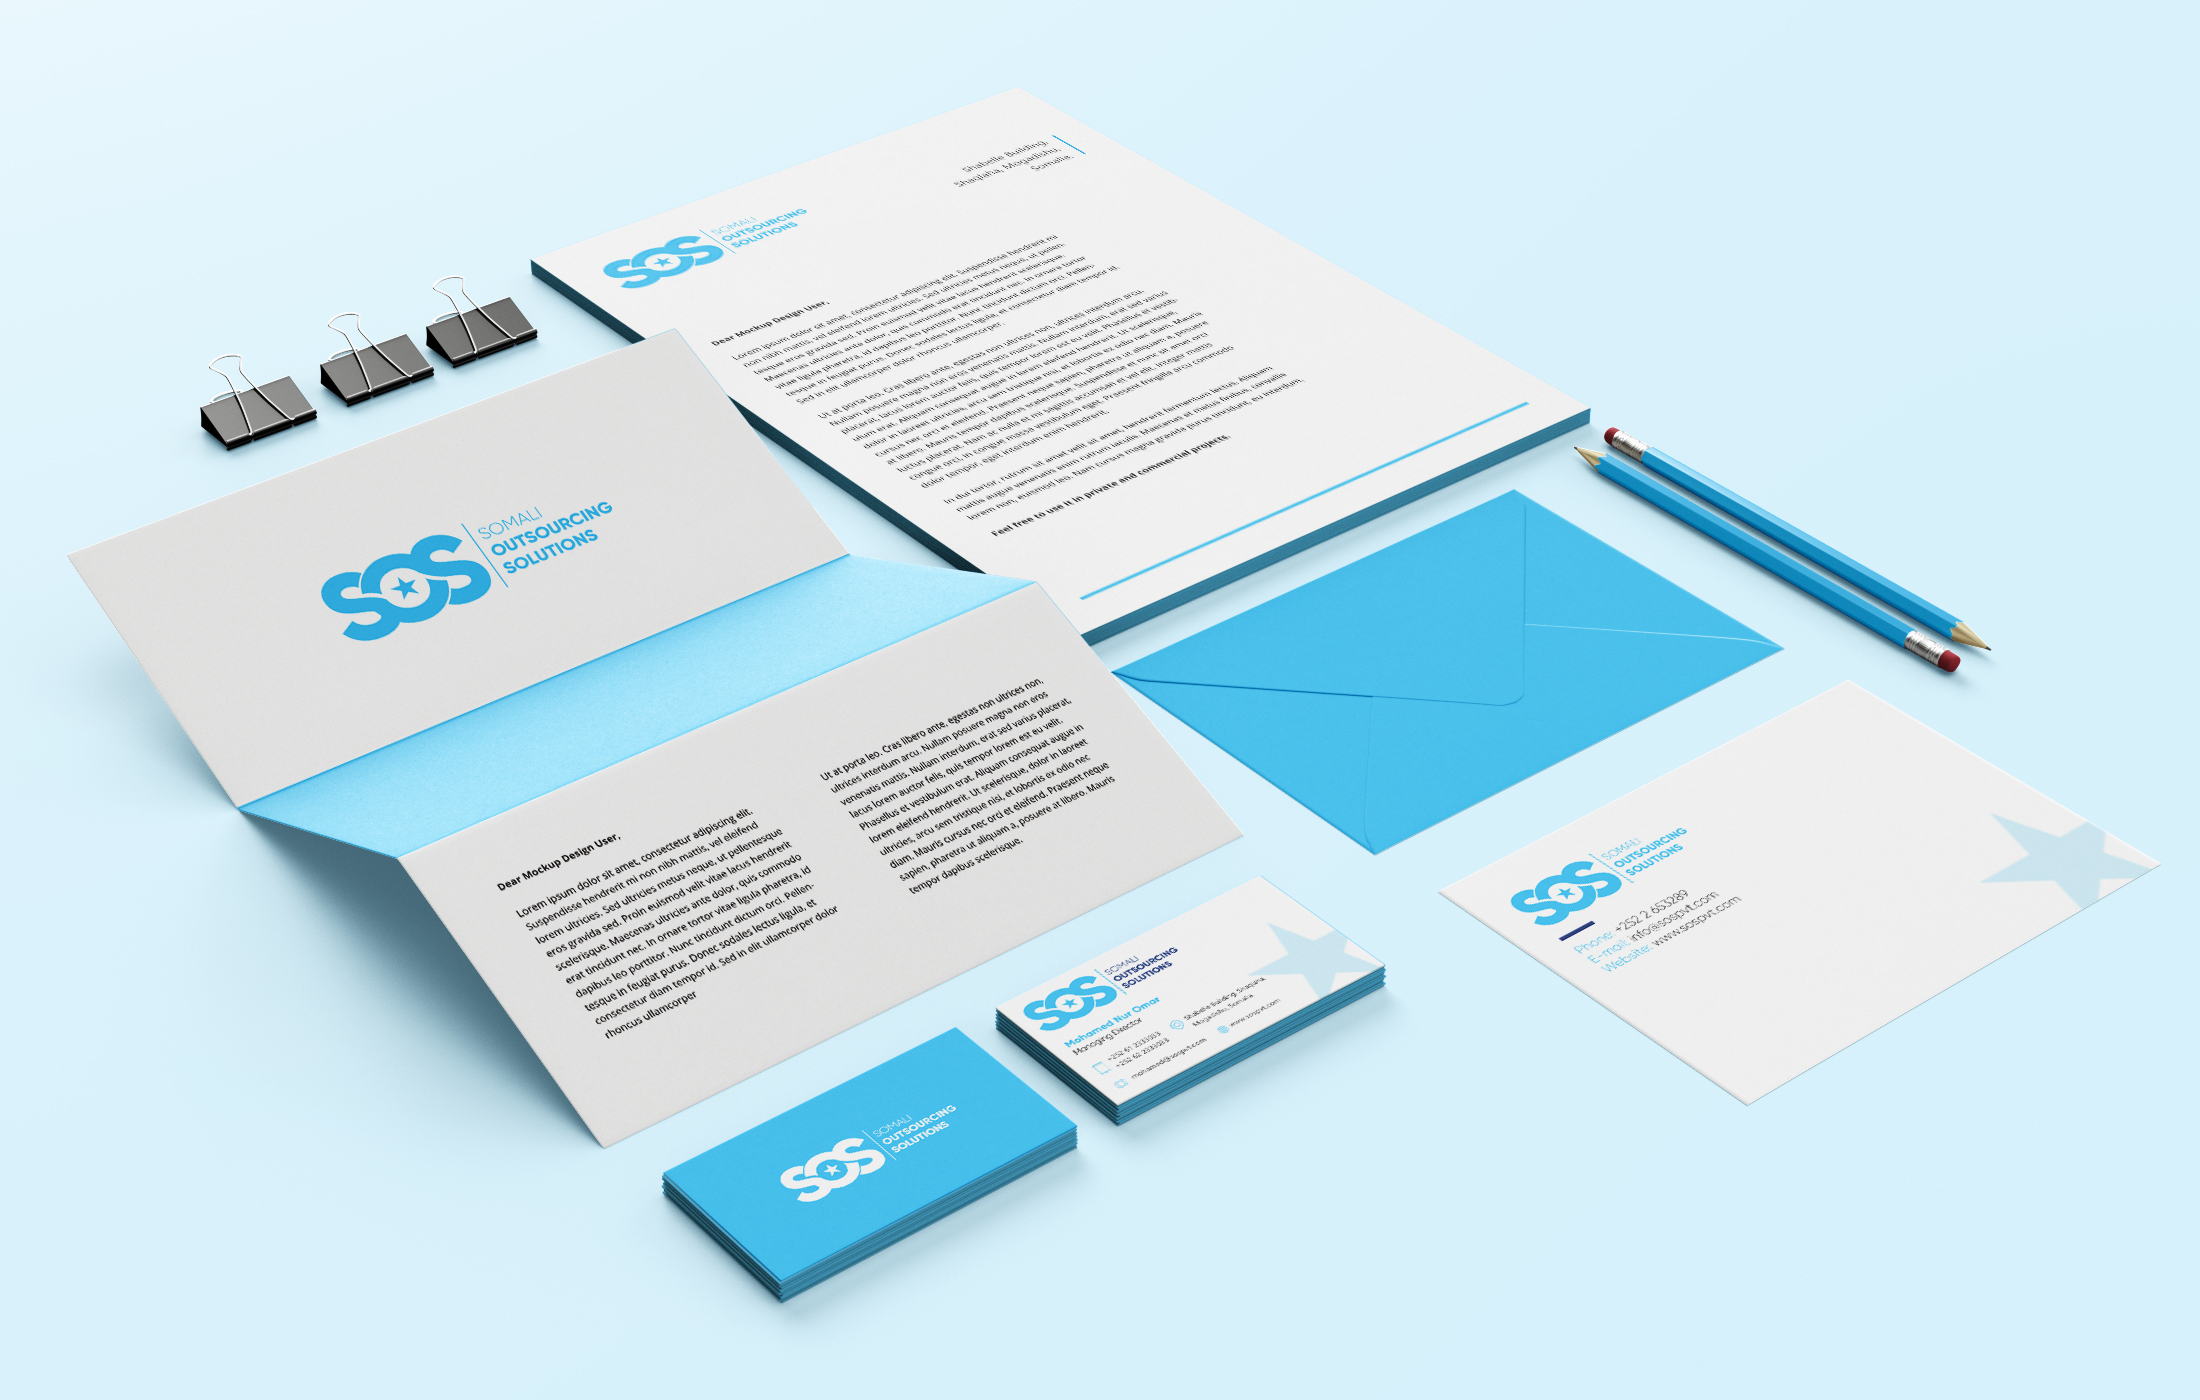 SOS Stationary Branding